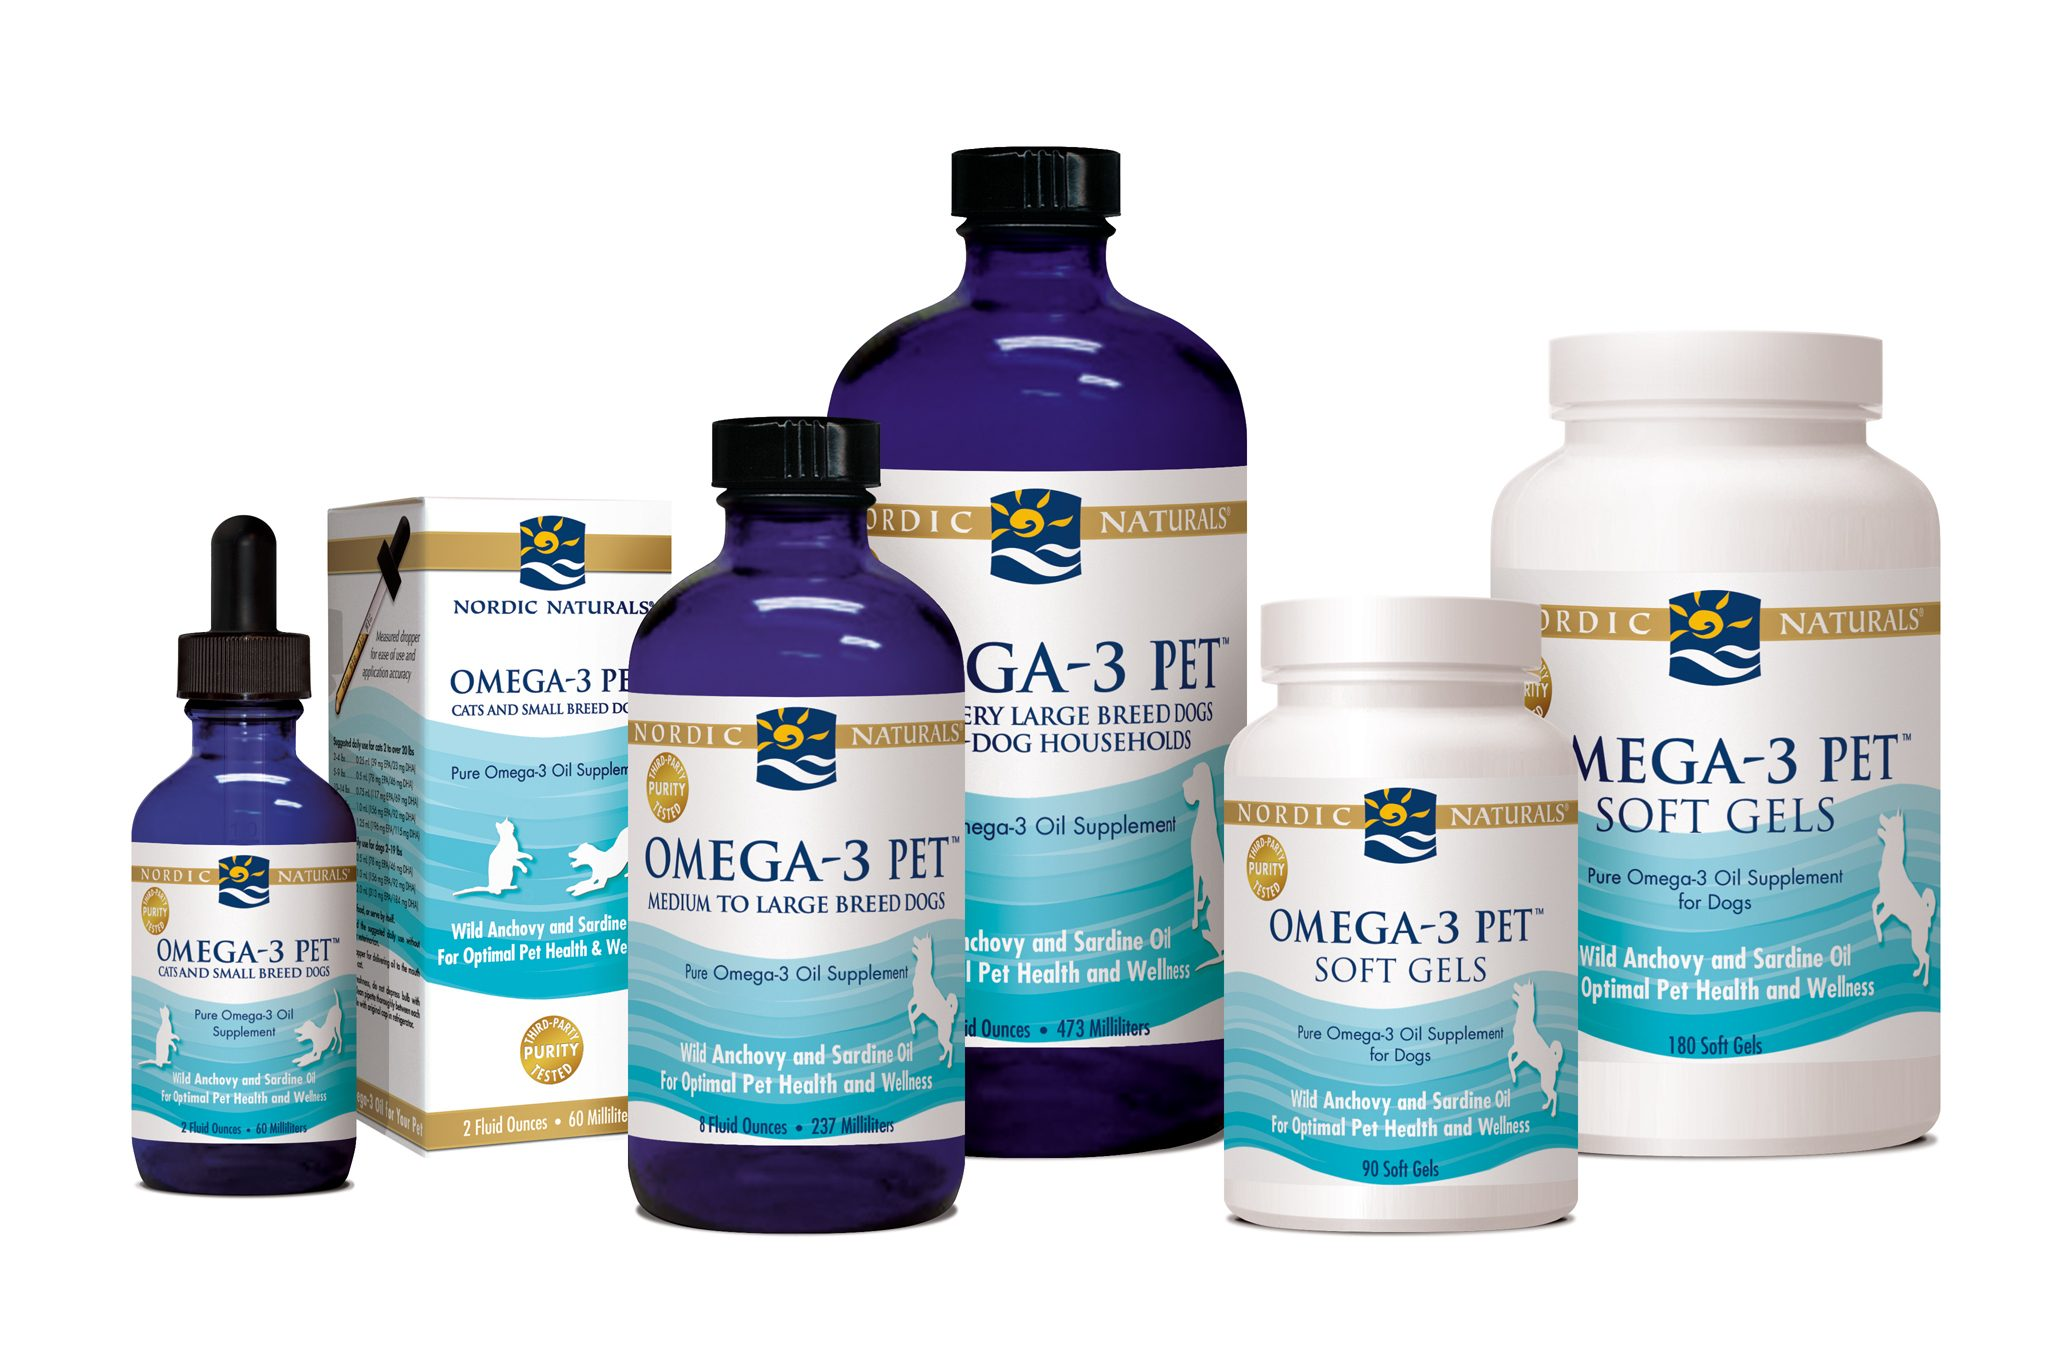 Nordic Naturals Omega-3 Fish Oil Products - All Forms